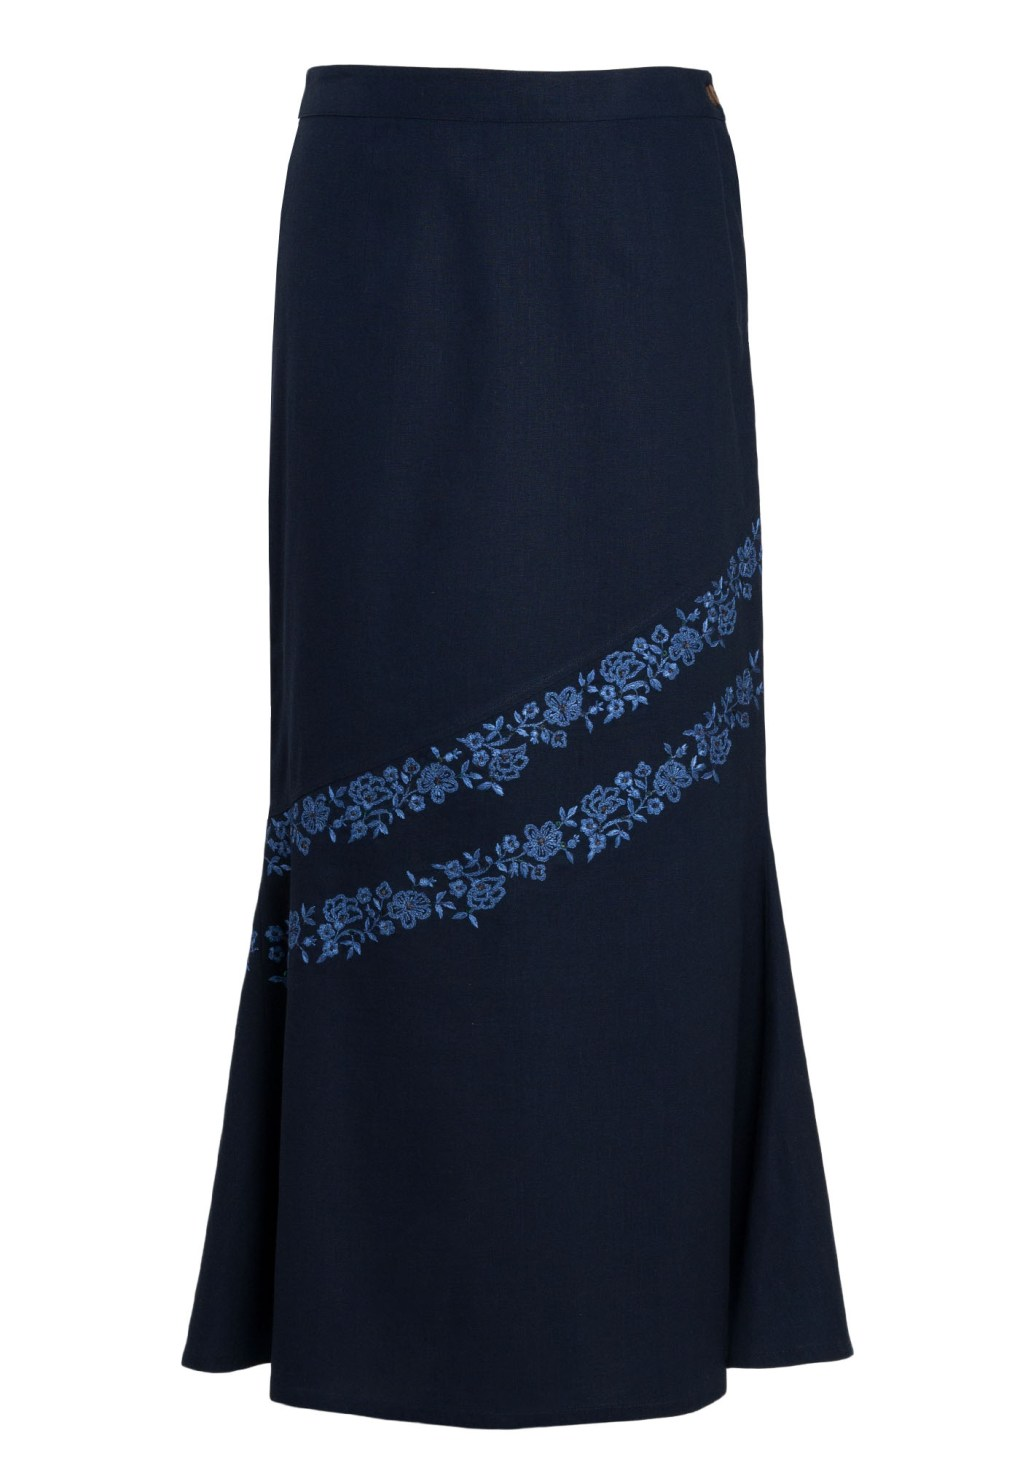 MINC ecofashion Maxi Skirt in Blue Cotton with Floral Embroidery